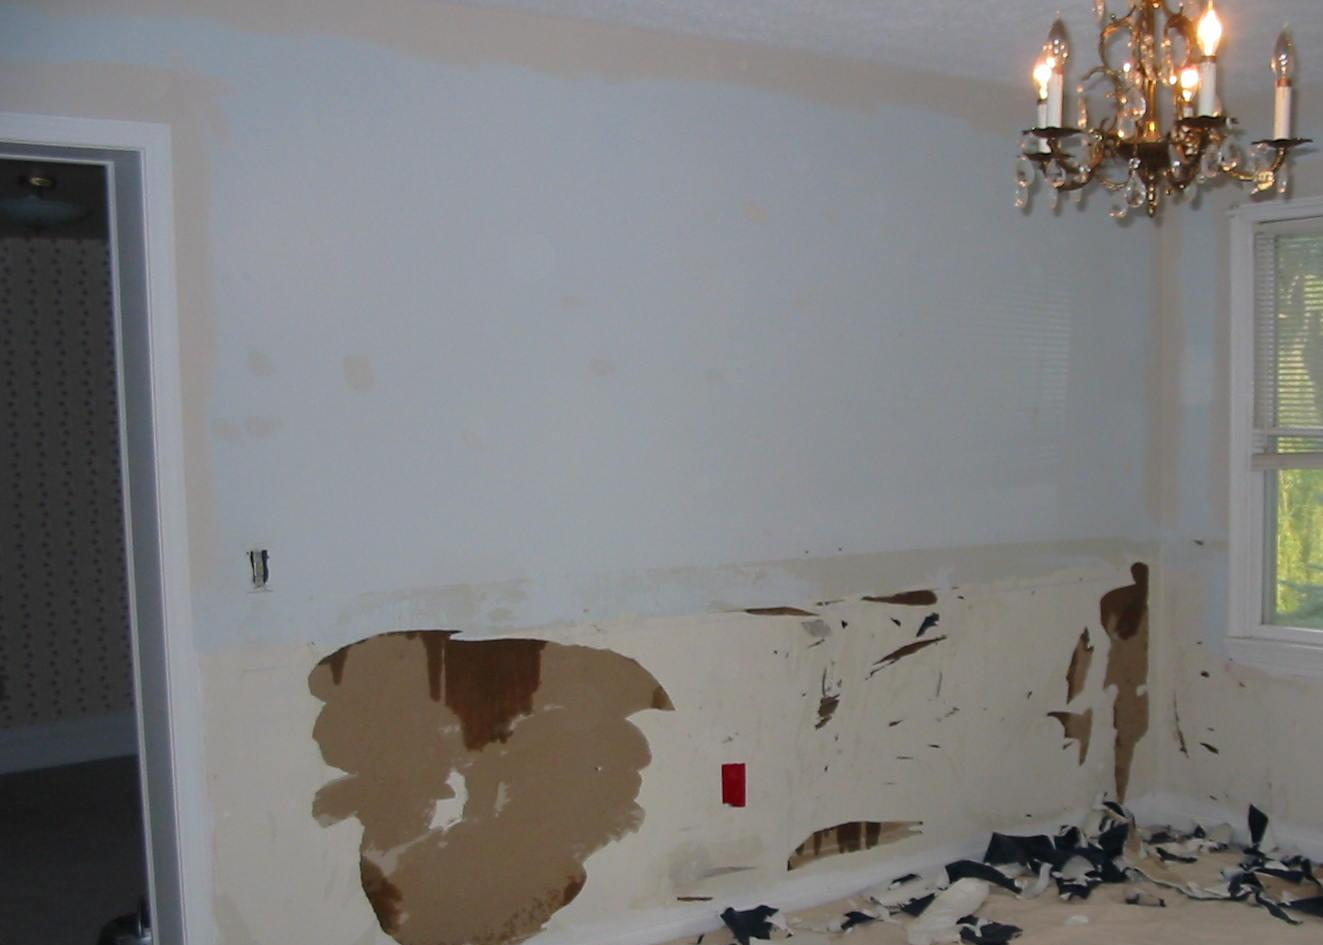 Wallpaper removal - Contractor Talk - Professional Construction and